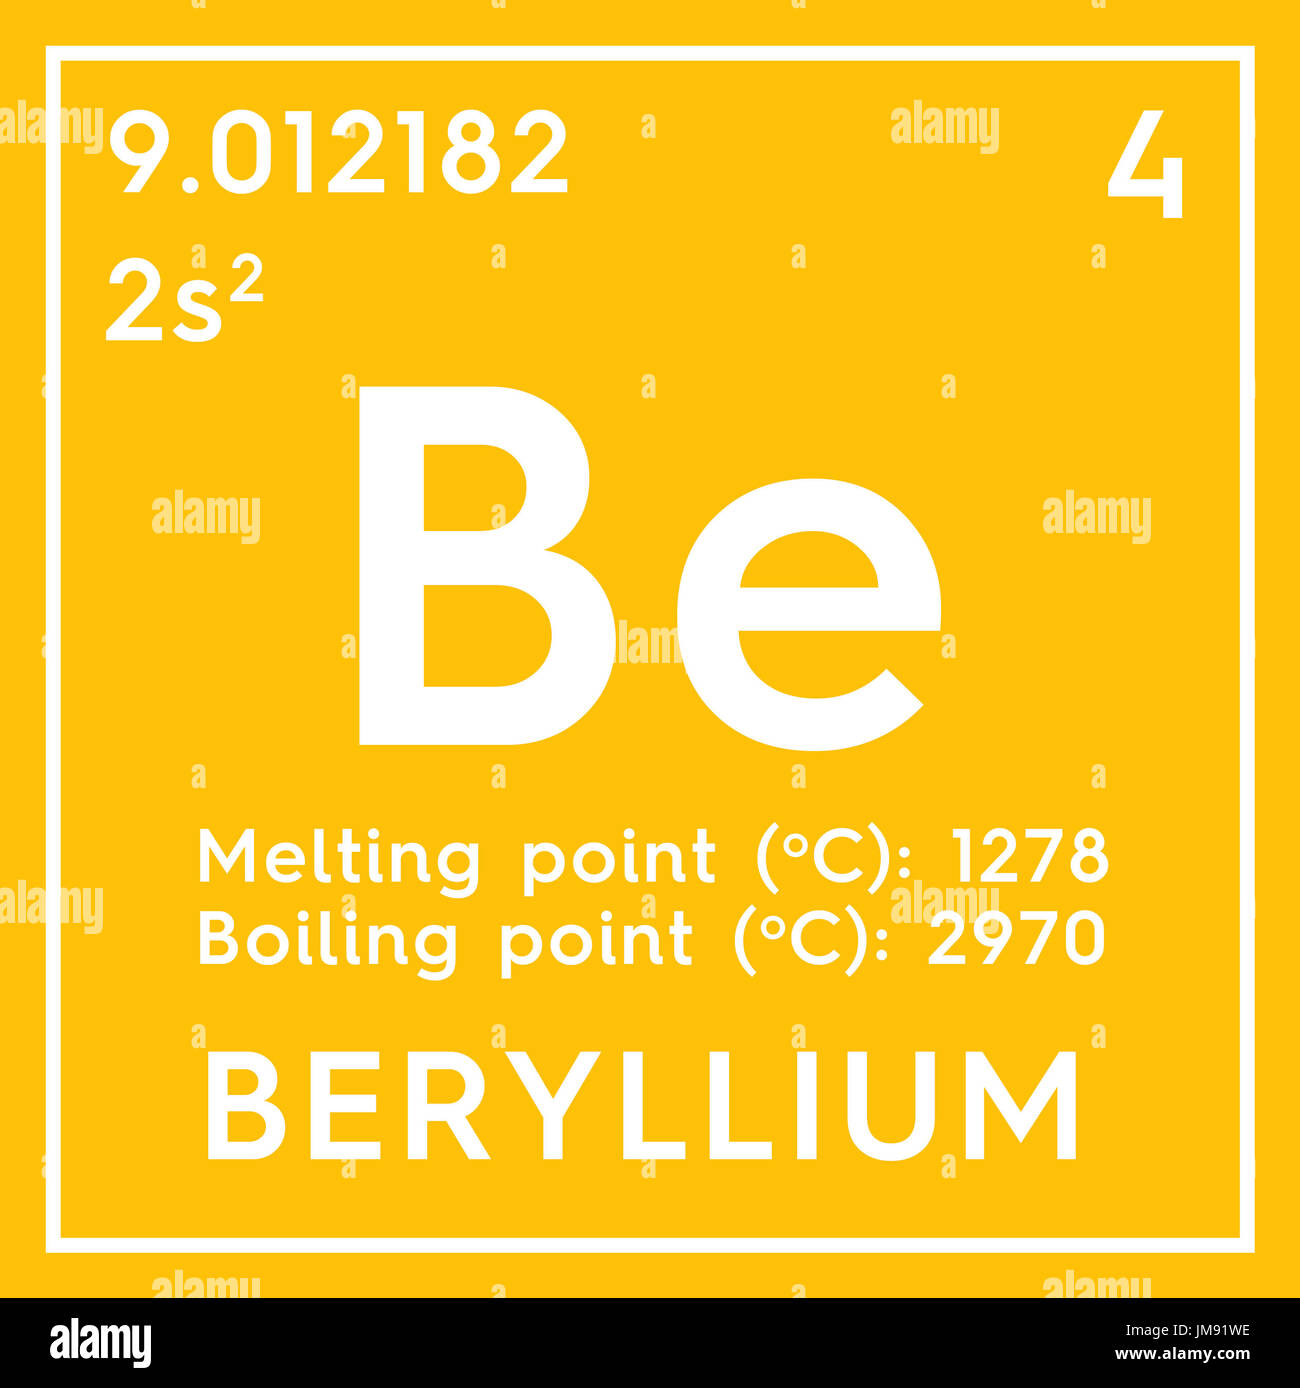 Beryllium alkaline earth metals chemical element of mendeleevs alkaline earth metals chemical element of mendeleevs periodic table beryllium in square urtaz Choice Image